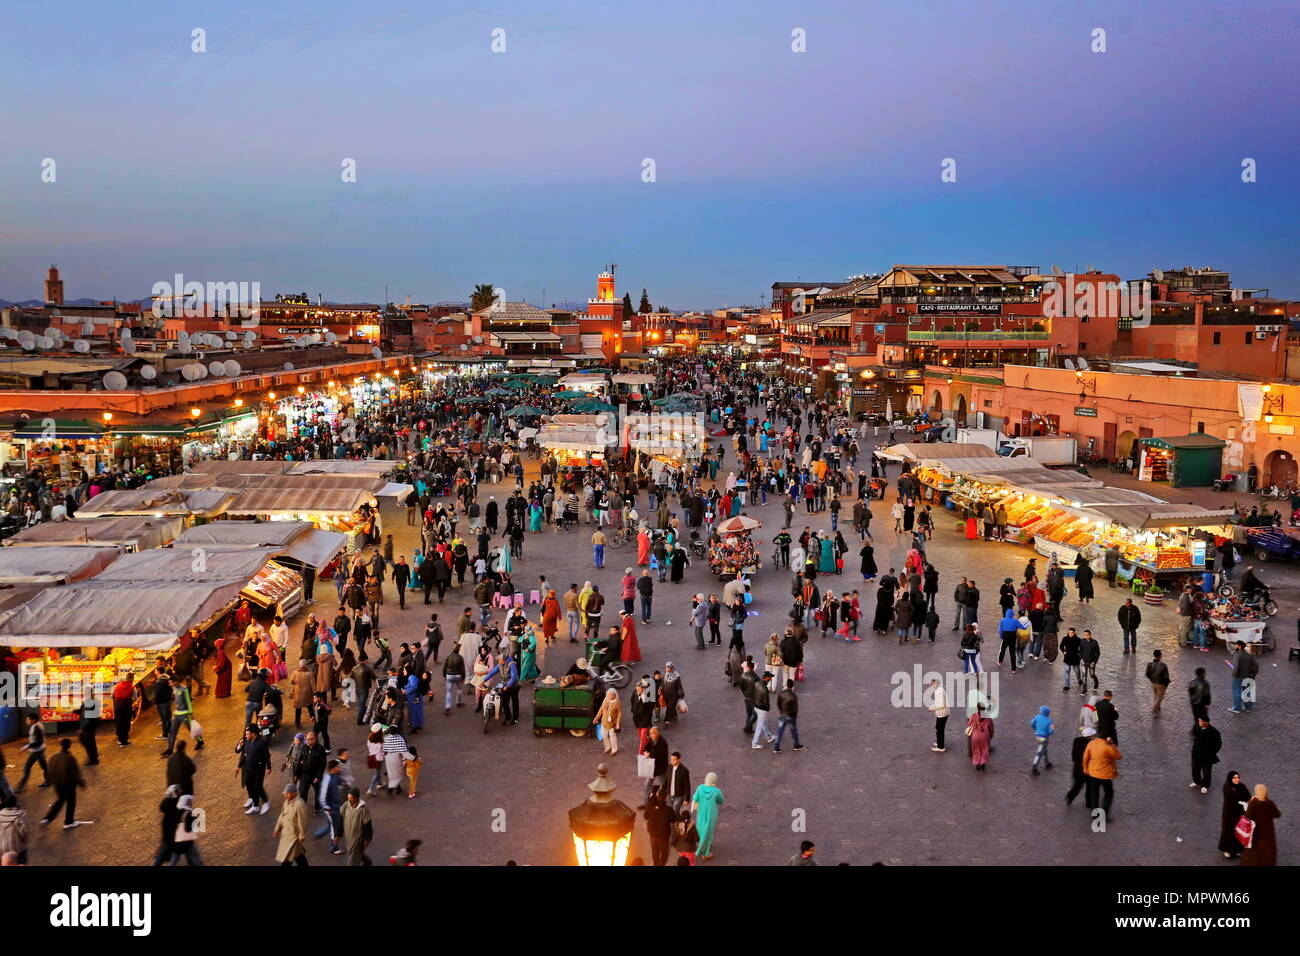 MARRAKECH, MOROCCO - 7 March 2016: Famous Jemaa el Fna square crowded at dusk. Marrakesh, Morocco Stock Photo